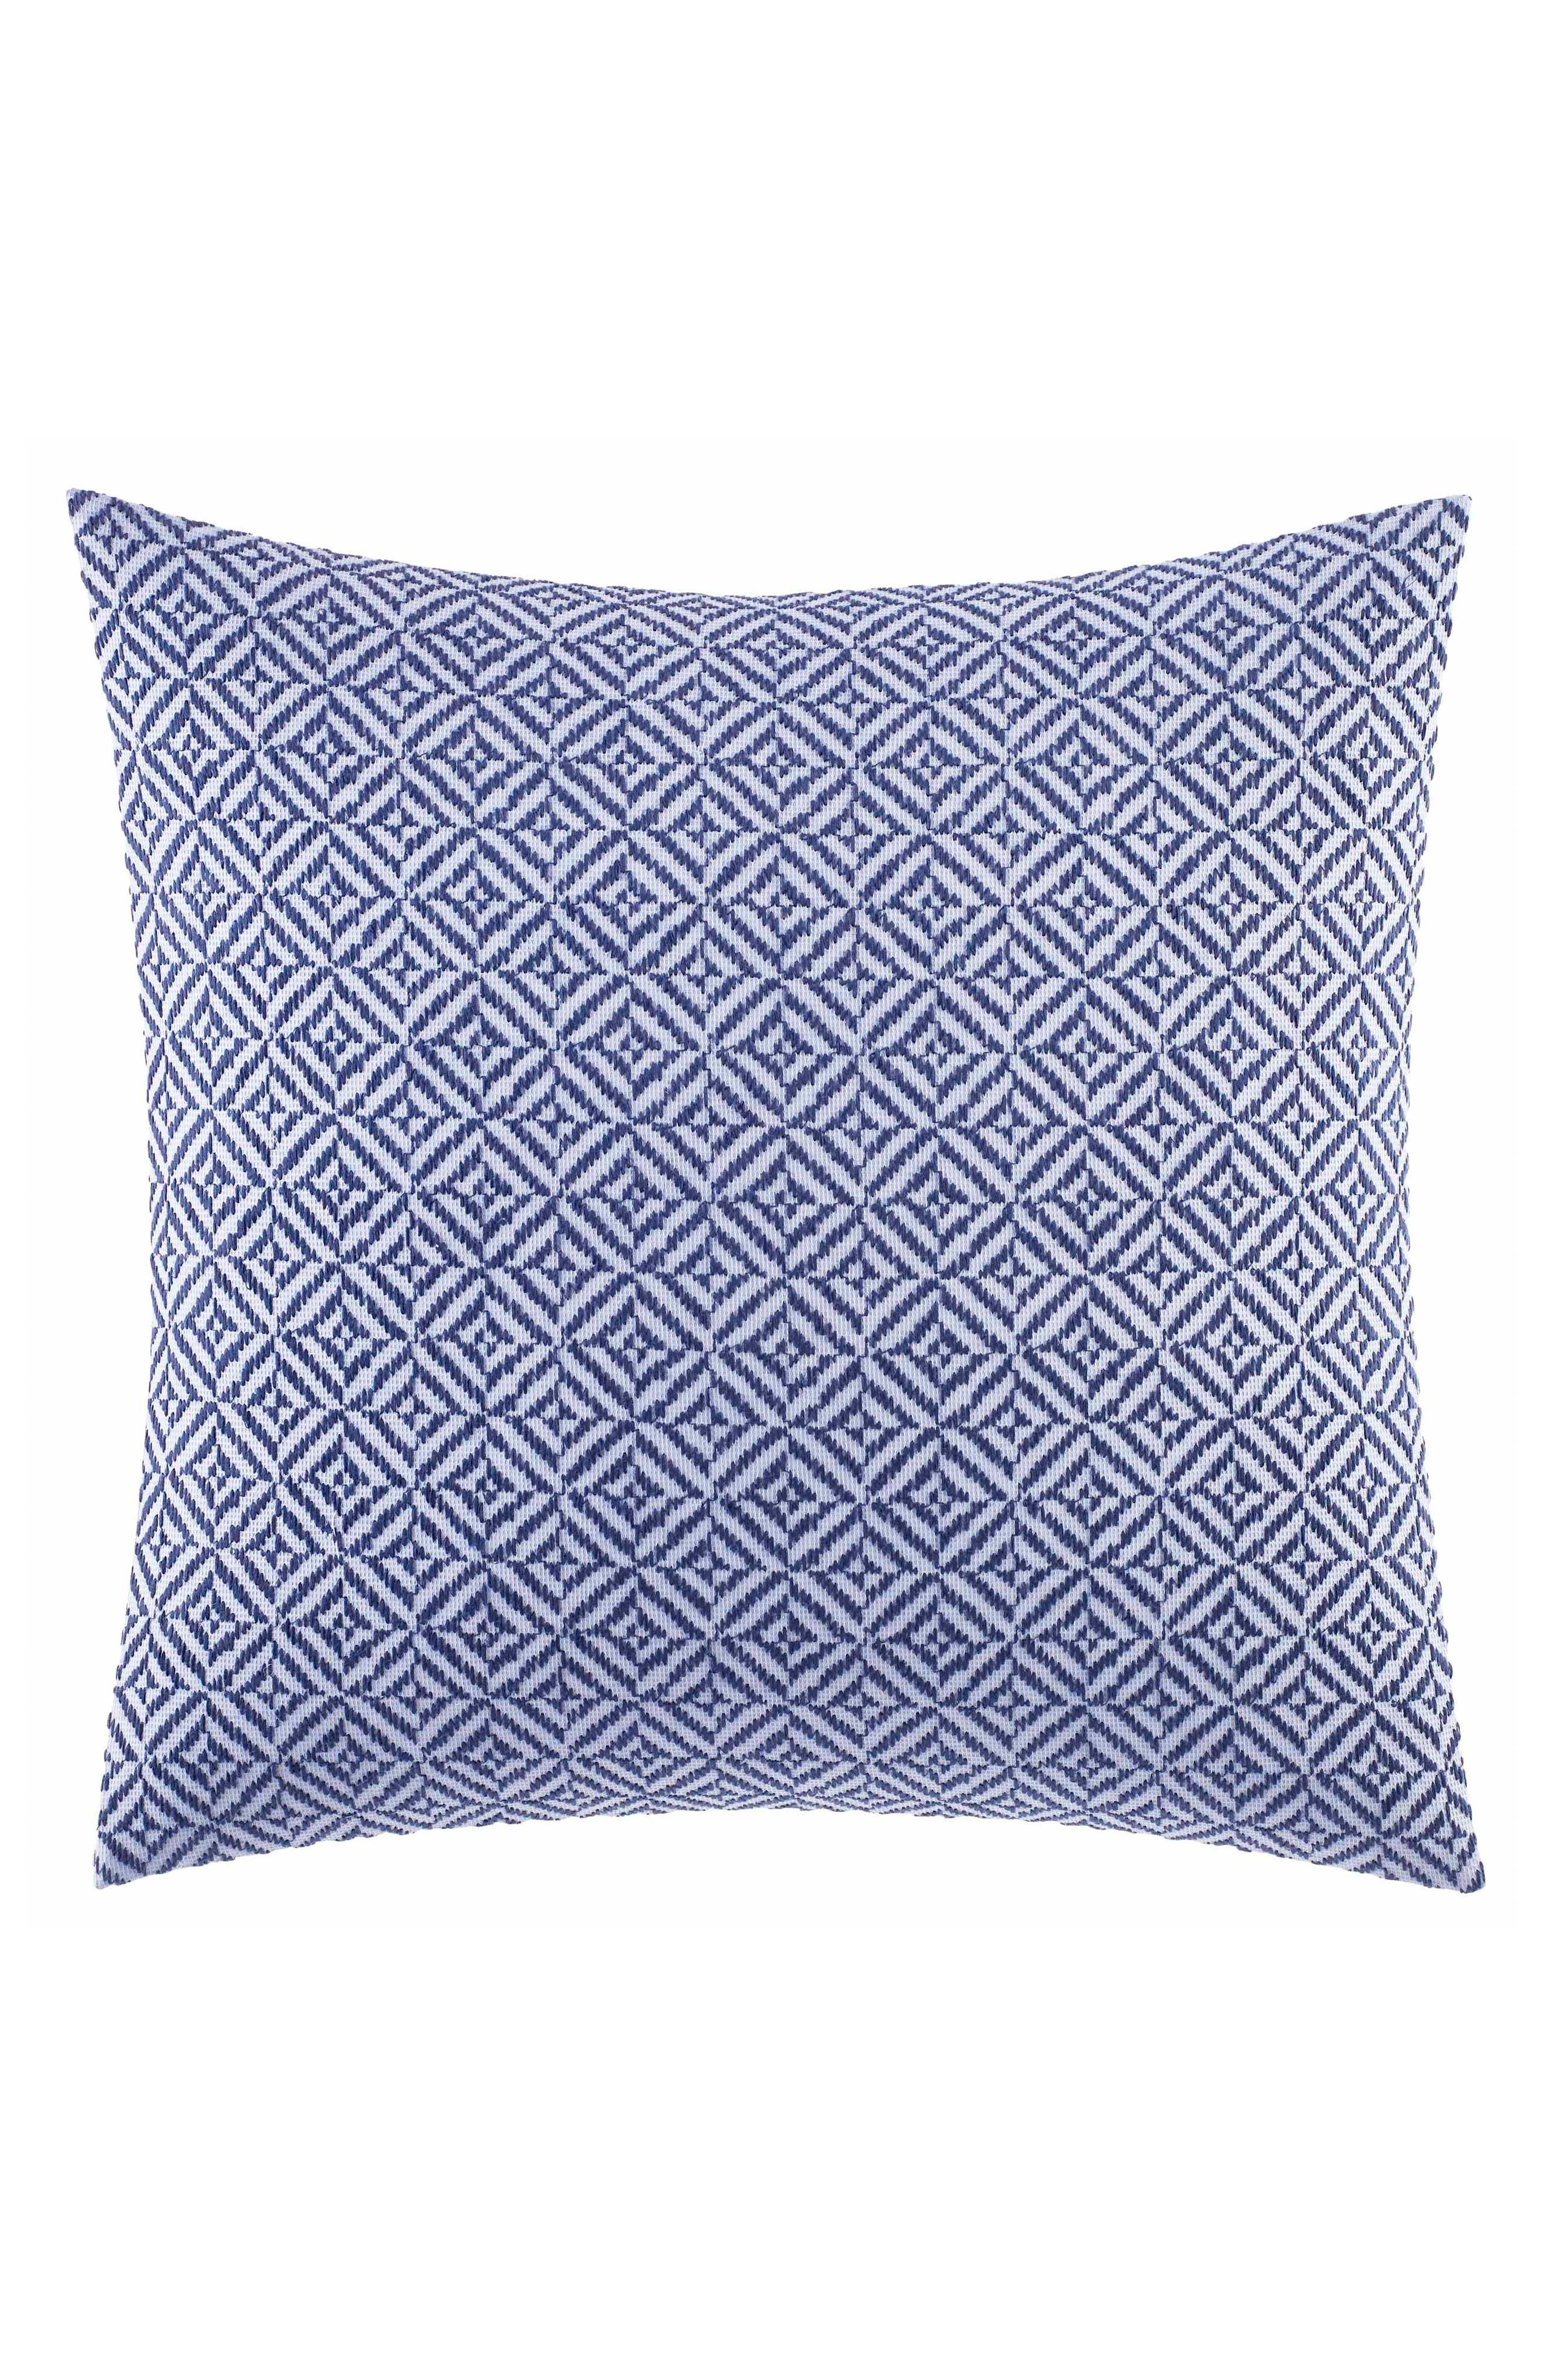 Main Image - Vera Wang Chevron Accent Pillow